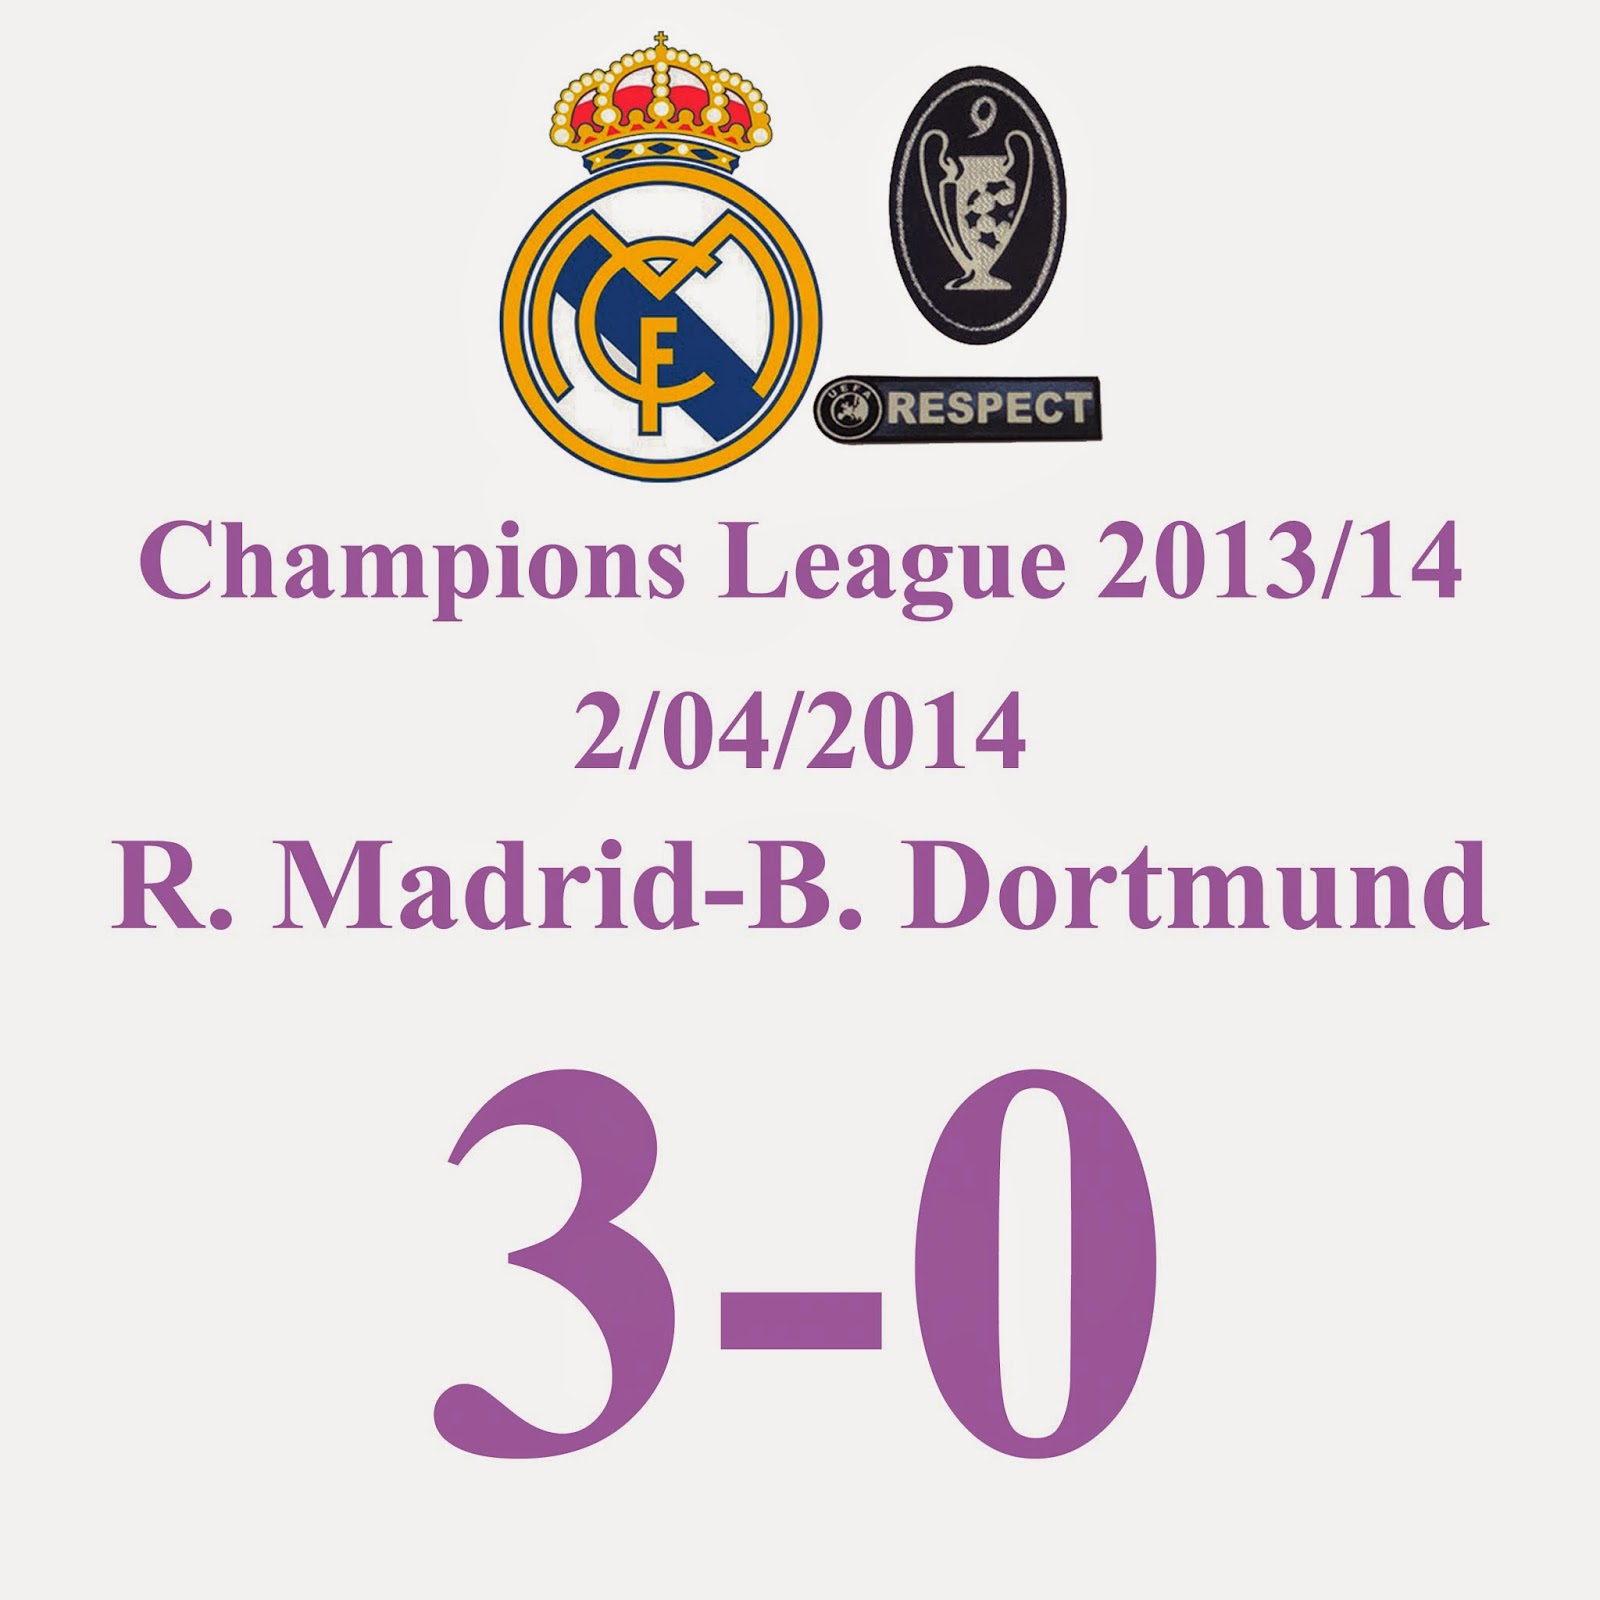 Real Madrid 3-0 Borussia Dortmund - Champions League Jornada Cuartos de final (ida) - 02/04/2014